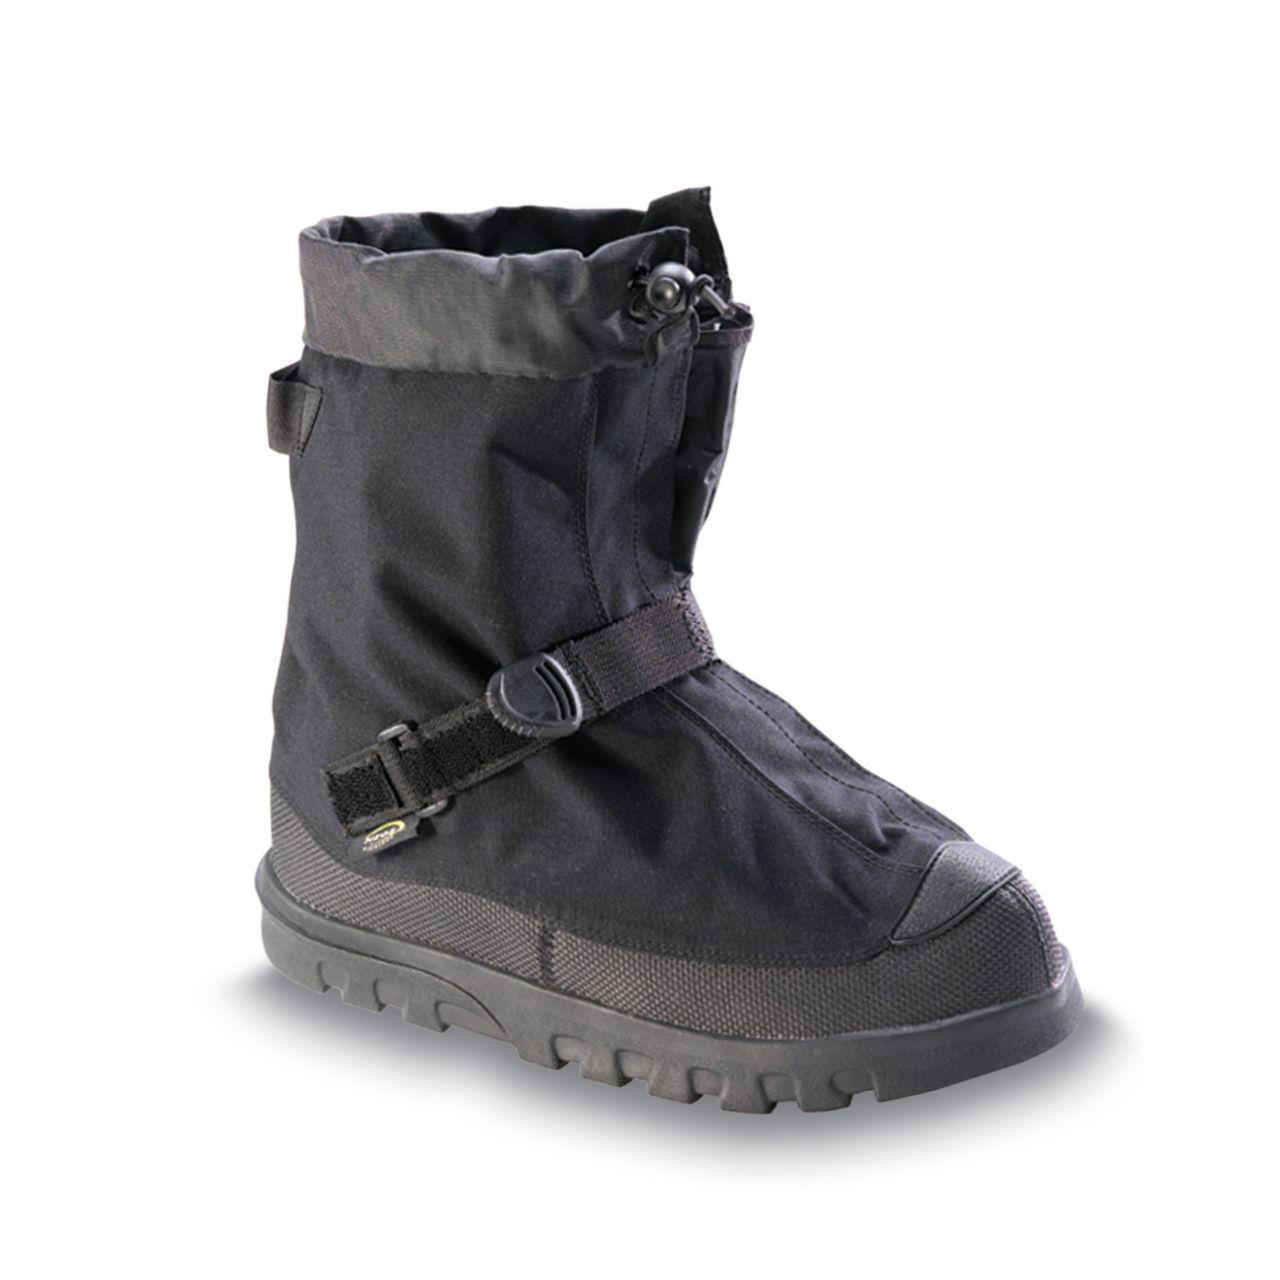 HS_neos_voyager_mid_overshoe_neos_vnn1